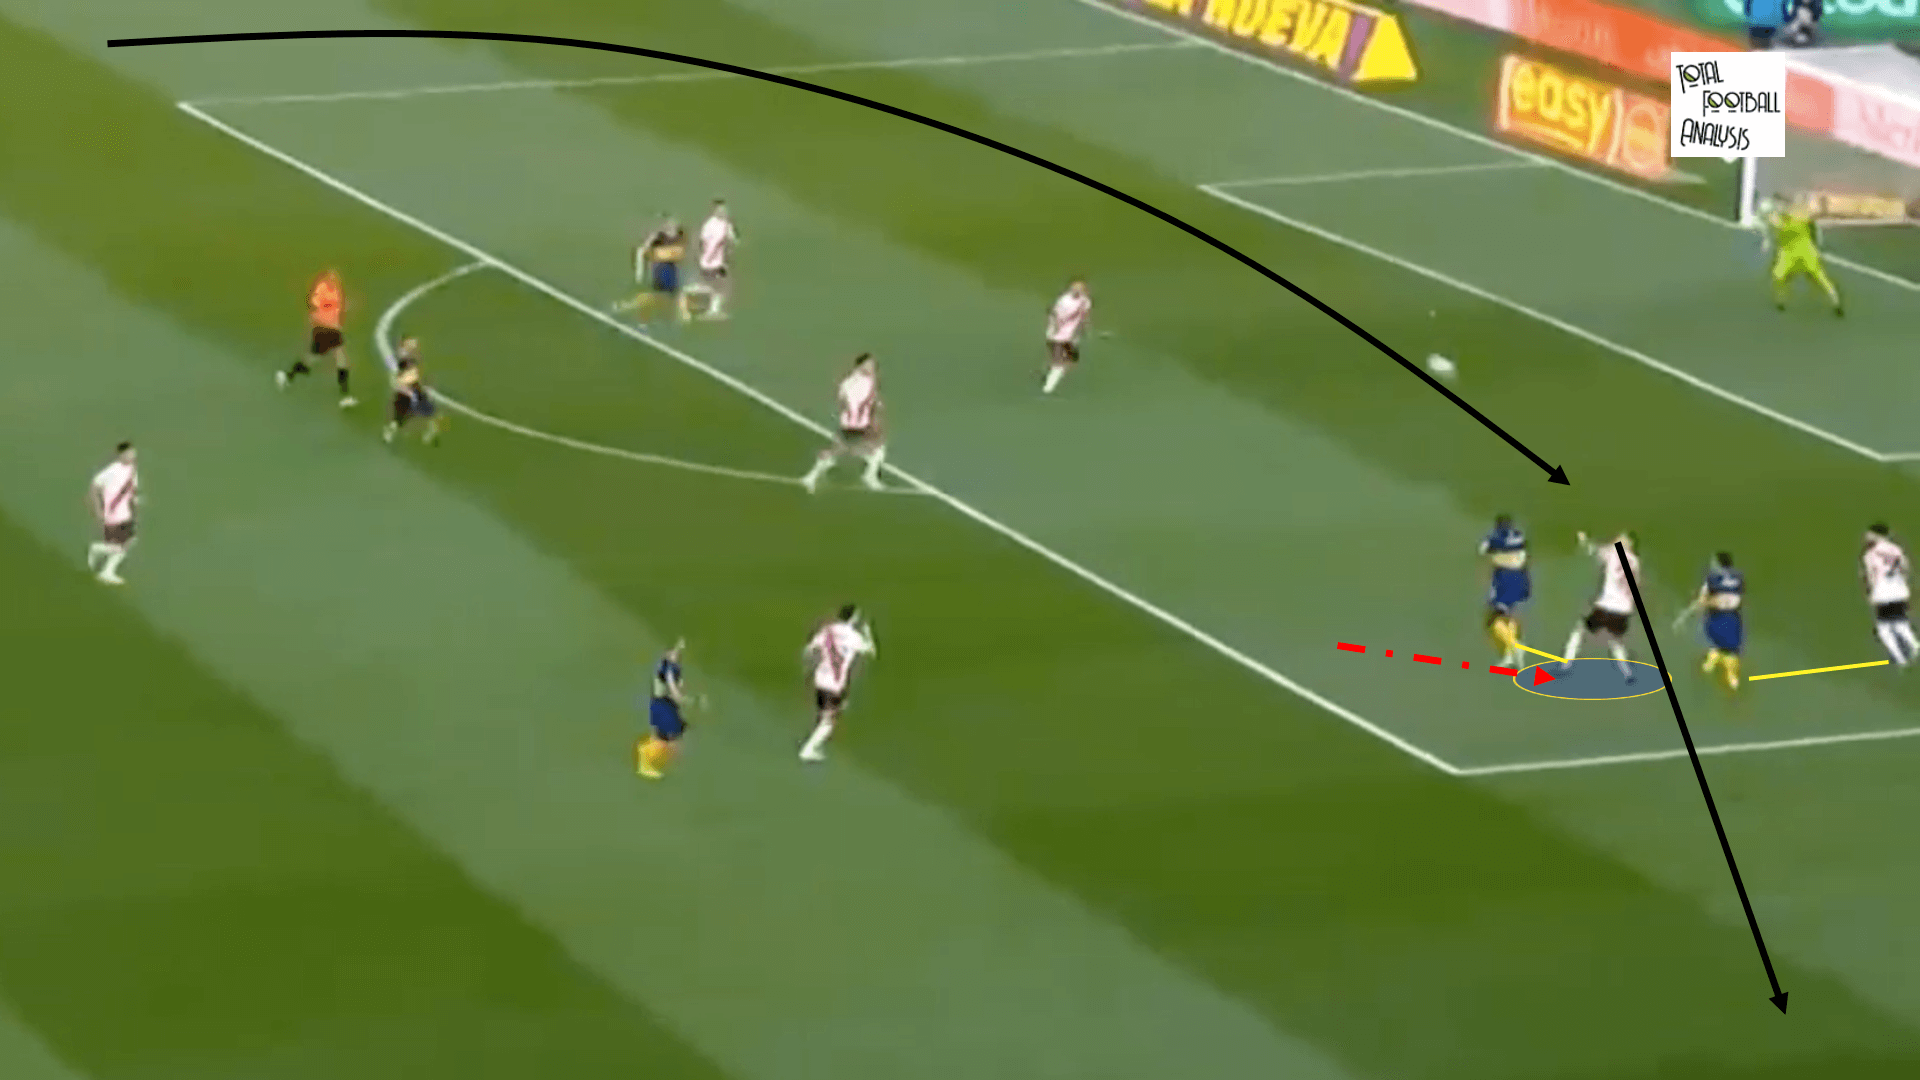 Lucas Martínez Quarta 2019/20 - scout report - tactical analysis tactics